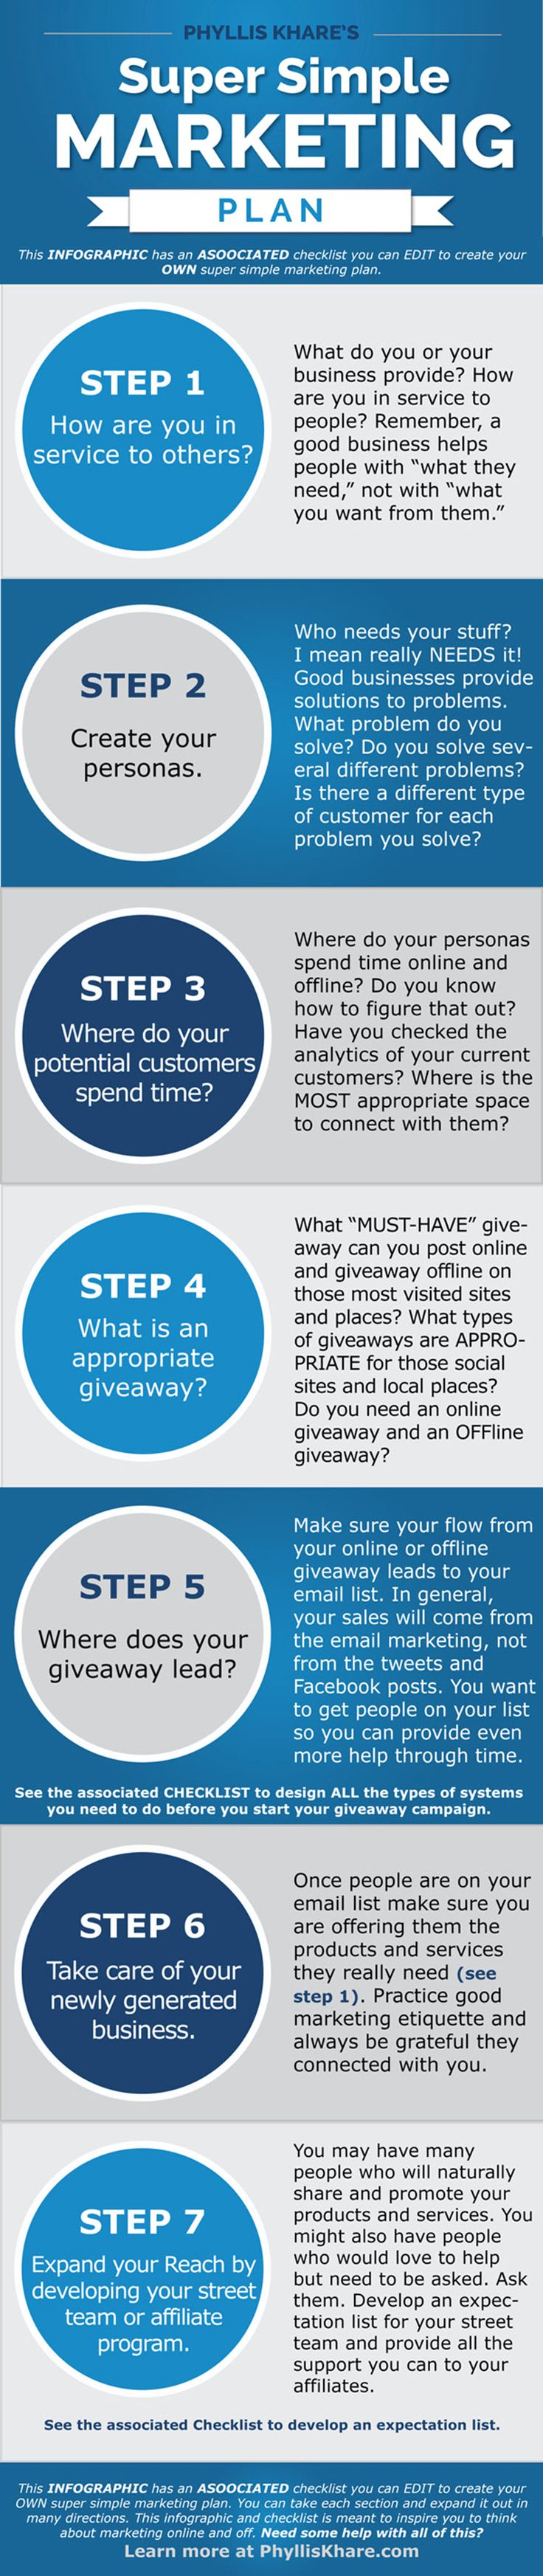 Super simple marketing plan template infographic facebook ads super simple marketing plan template infographic accmission Images